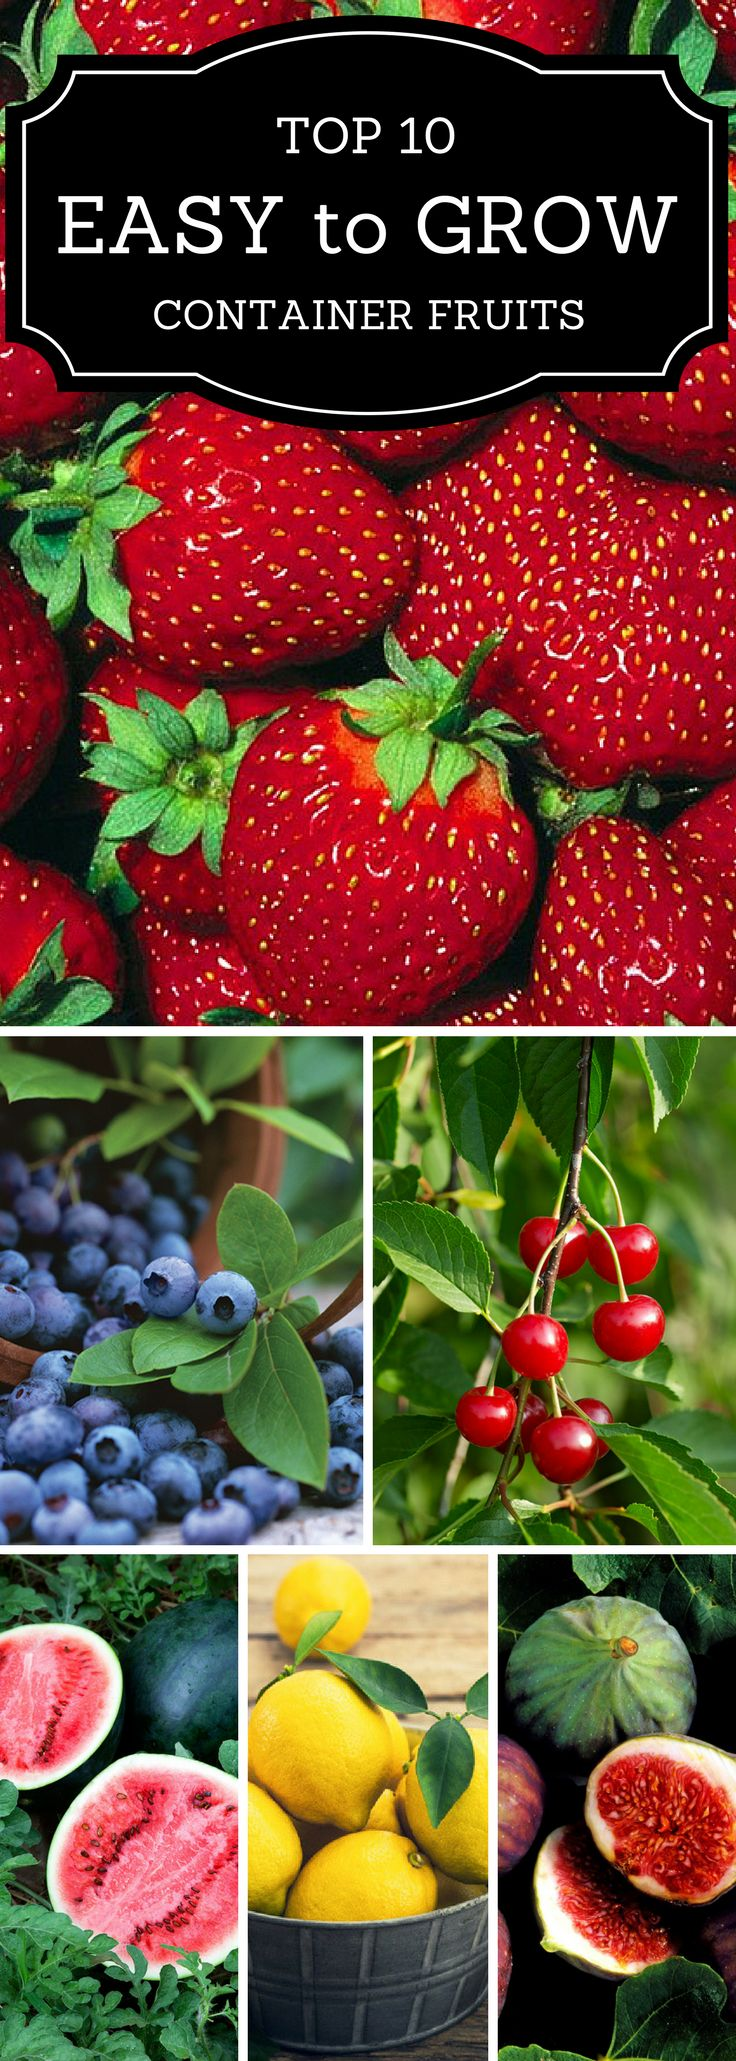 10 Easy to grow fruits in containers